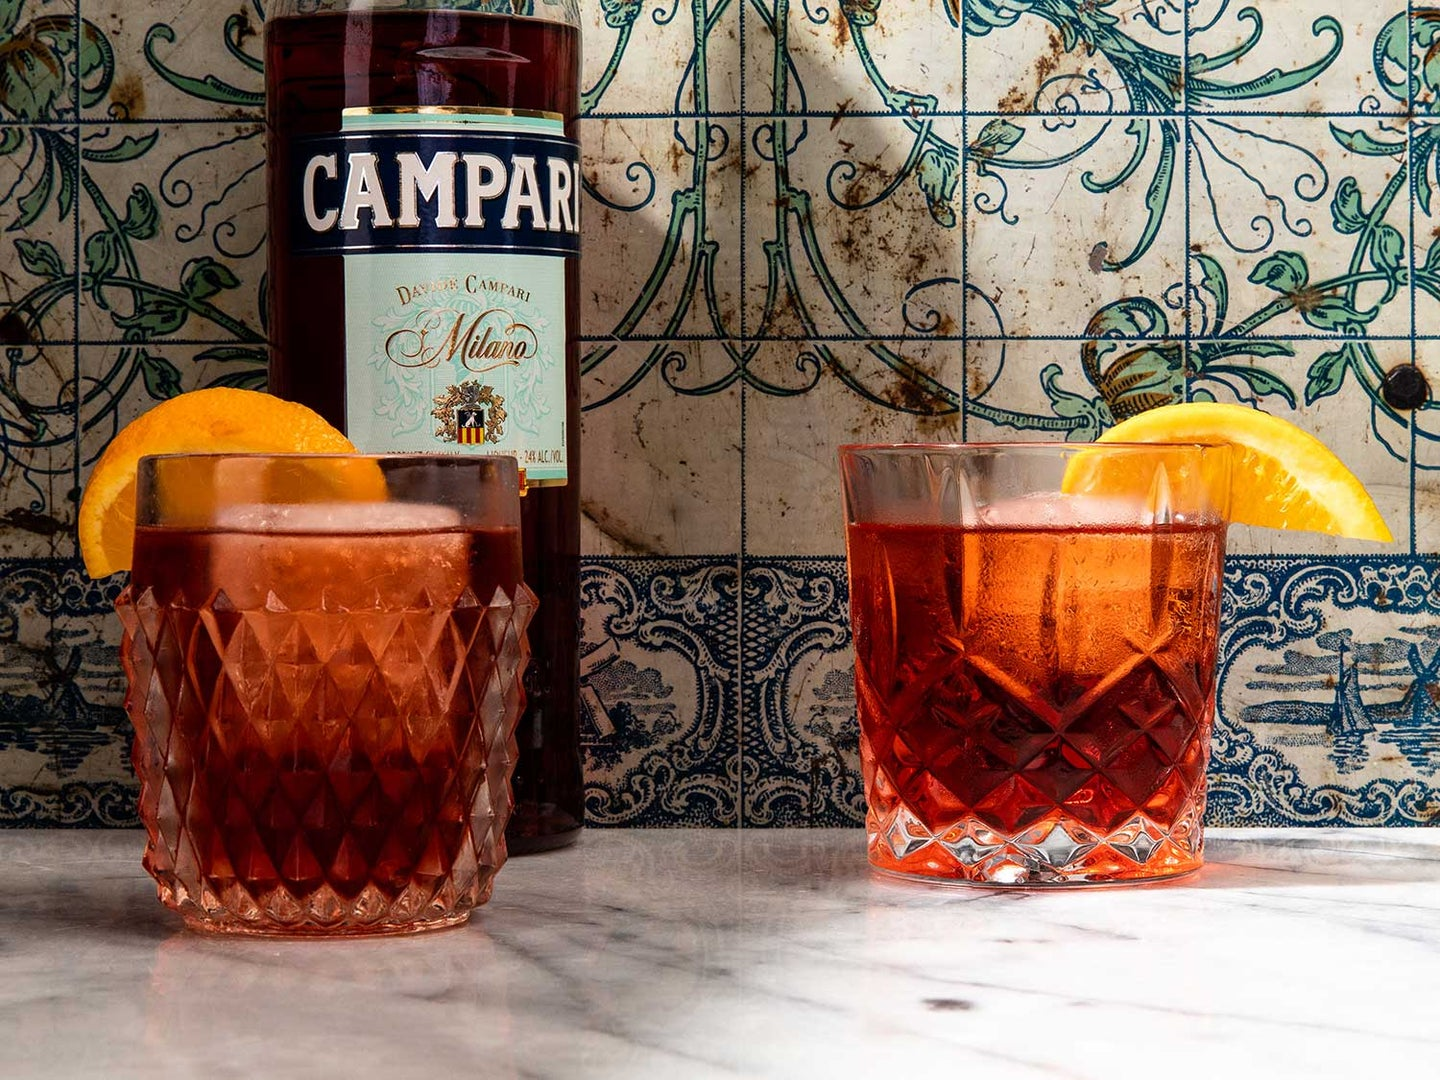 """The Negroni is a bartender's favorite plaything, with ingredients swapped for everything from mezcal to sherry. Try replacing the gin with sparkling wine for a """"bungled Negroni"""", or with bourbon for a Boulevardier. Or call on Aperol instead of Campari and sub in dry vermouth for a Contessa. Here's how to make a classic Negroni, plus a few more of our favorite riffs on the beloved drink."""